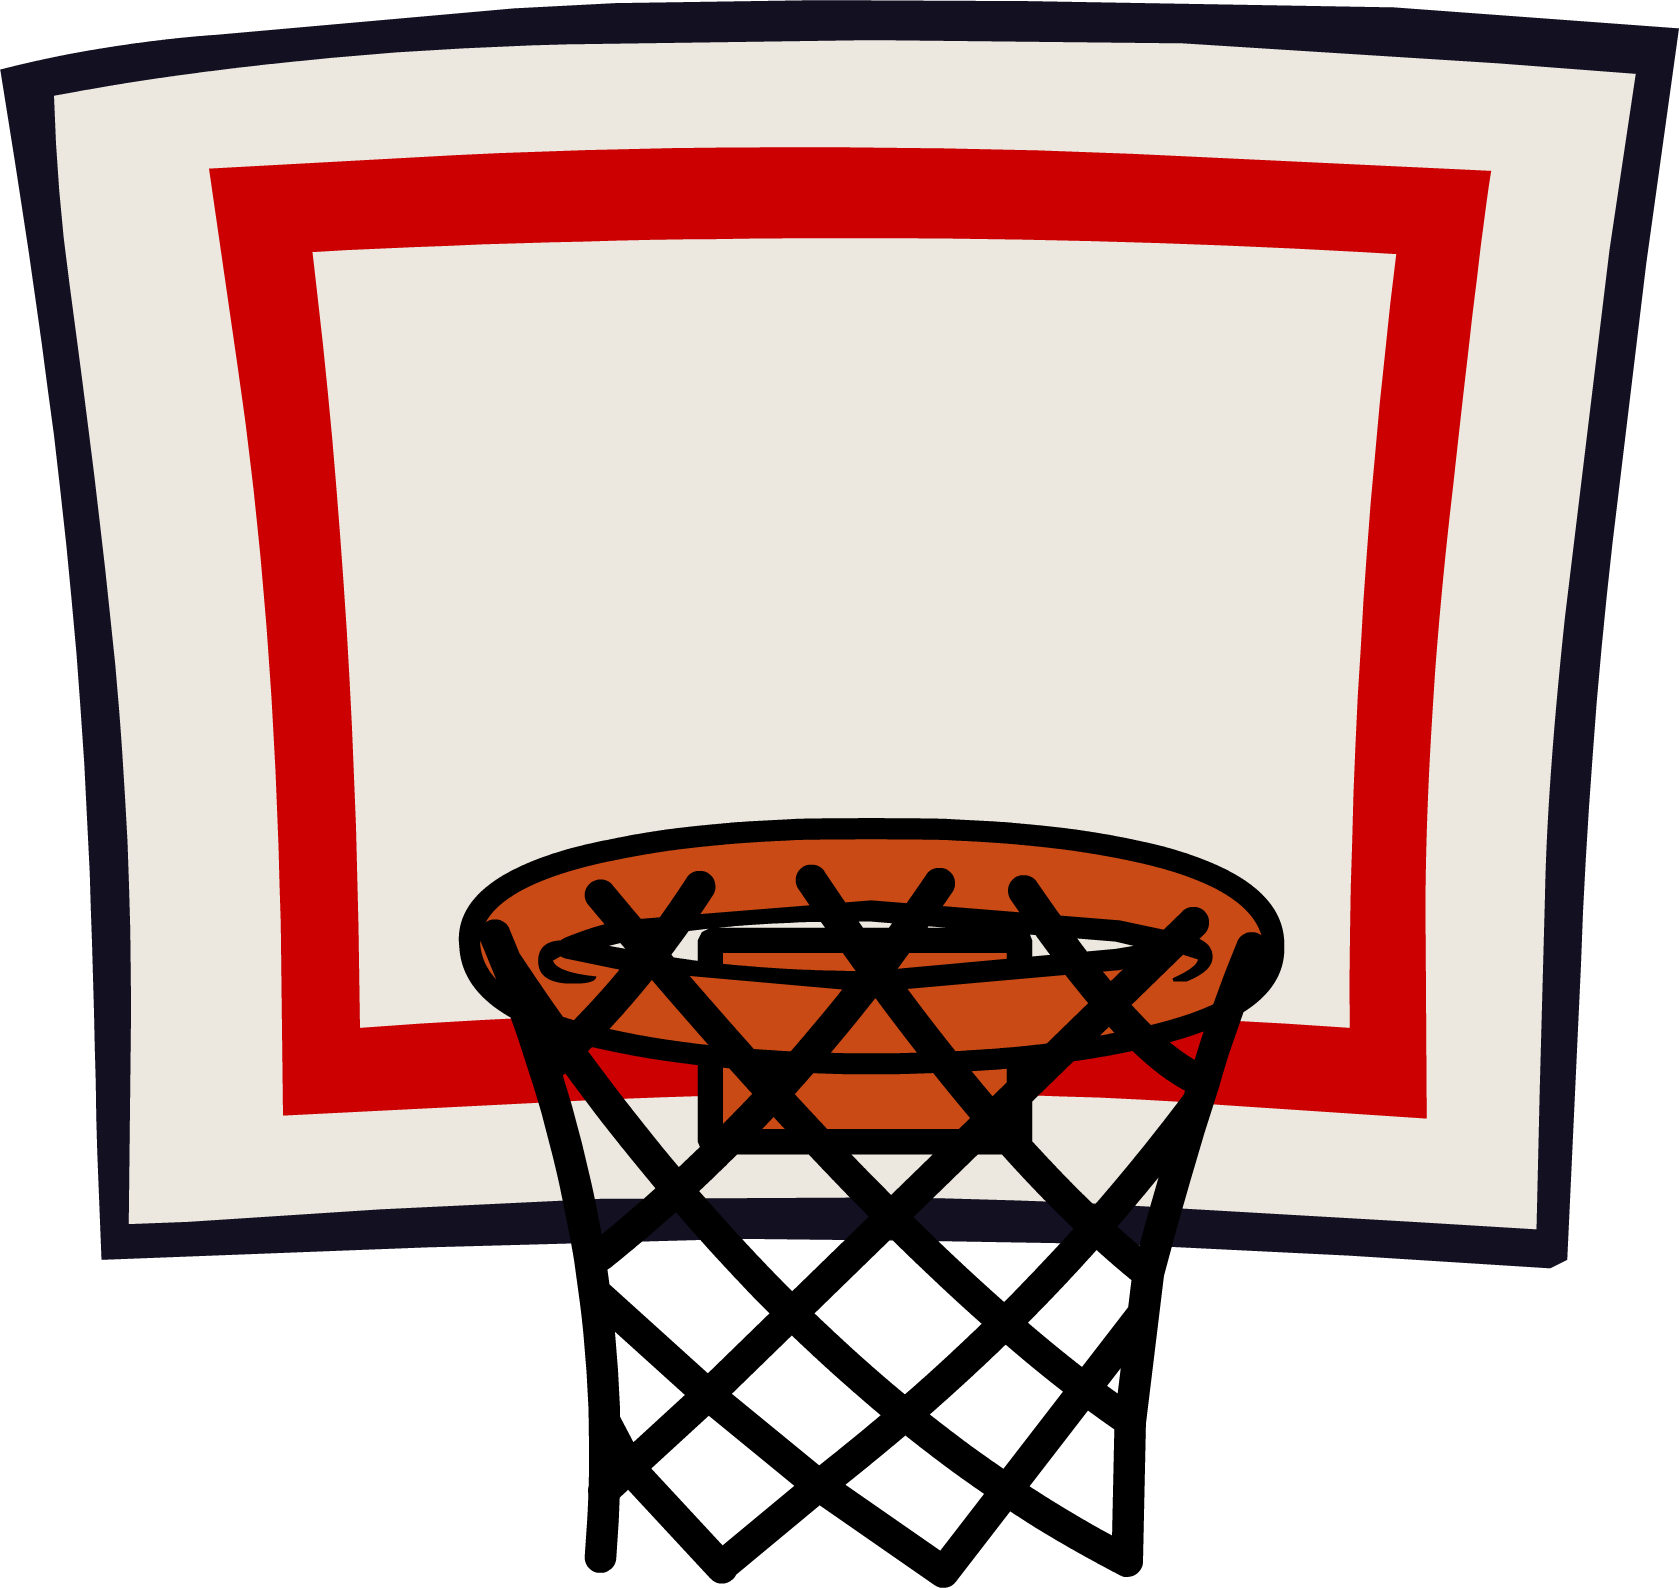 Fun basketball clipart picture freeuse library Two Wedding Rings Clipart | jokingart.com Ring Clipart picture freeuse library